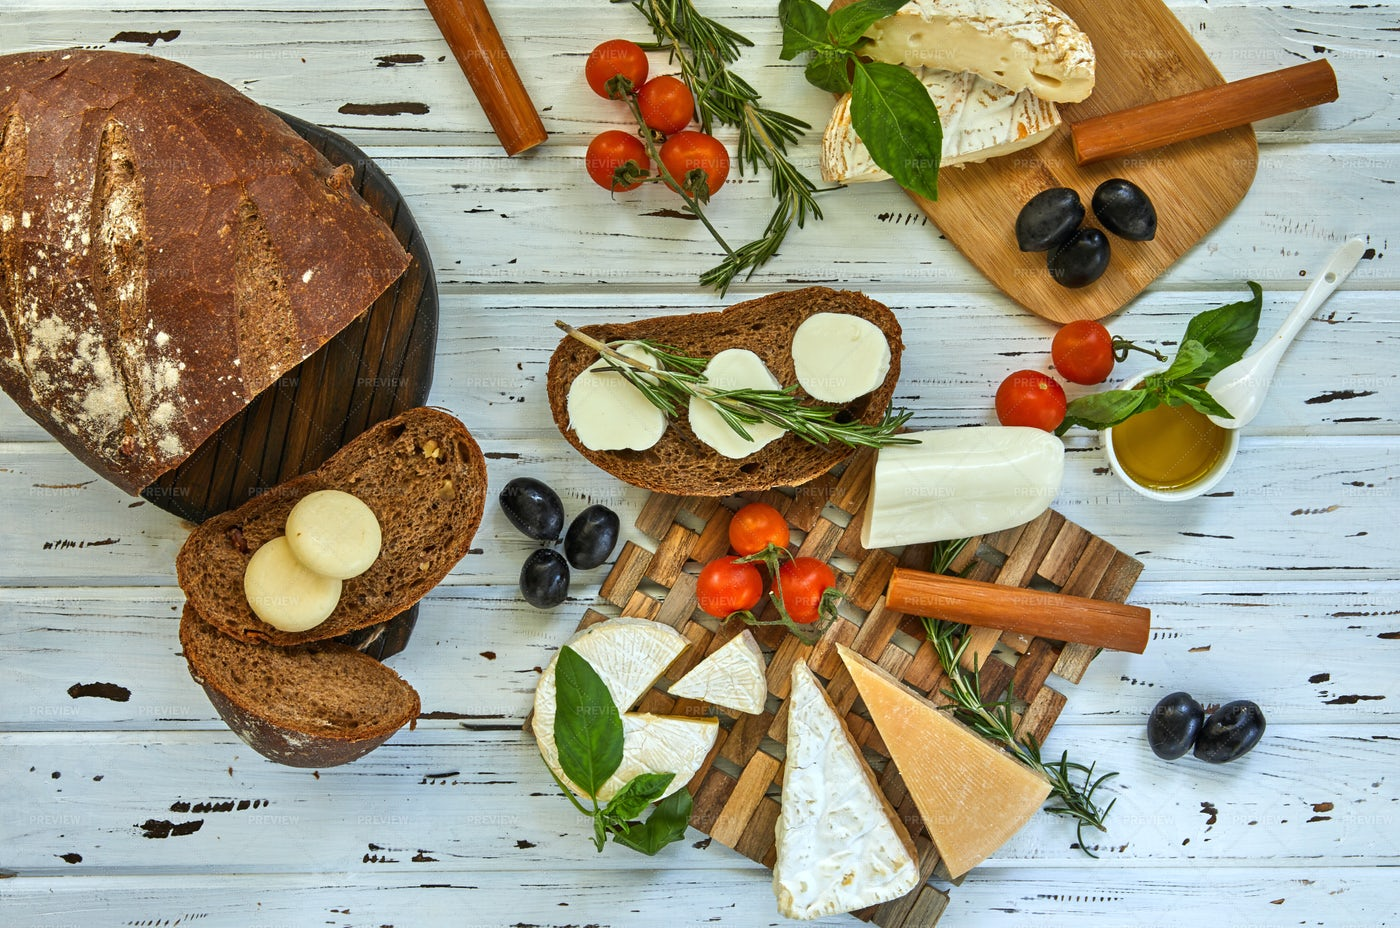 Various Cheeses, Bread And Veg: Stock Photos